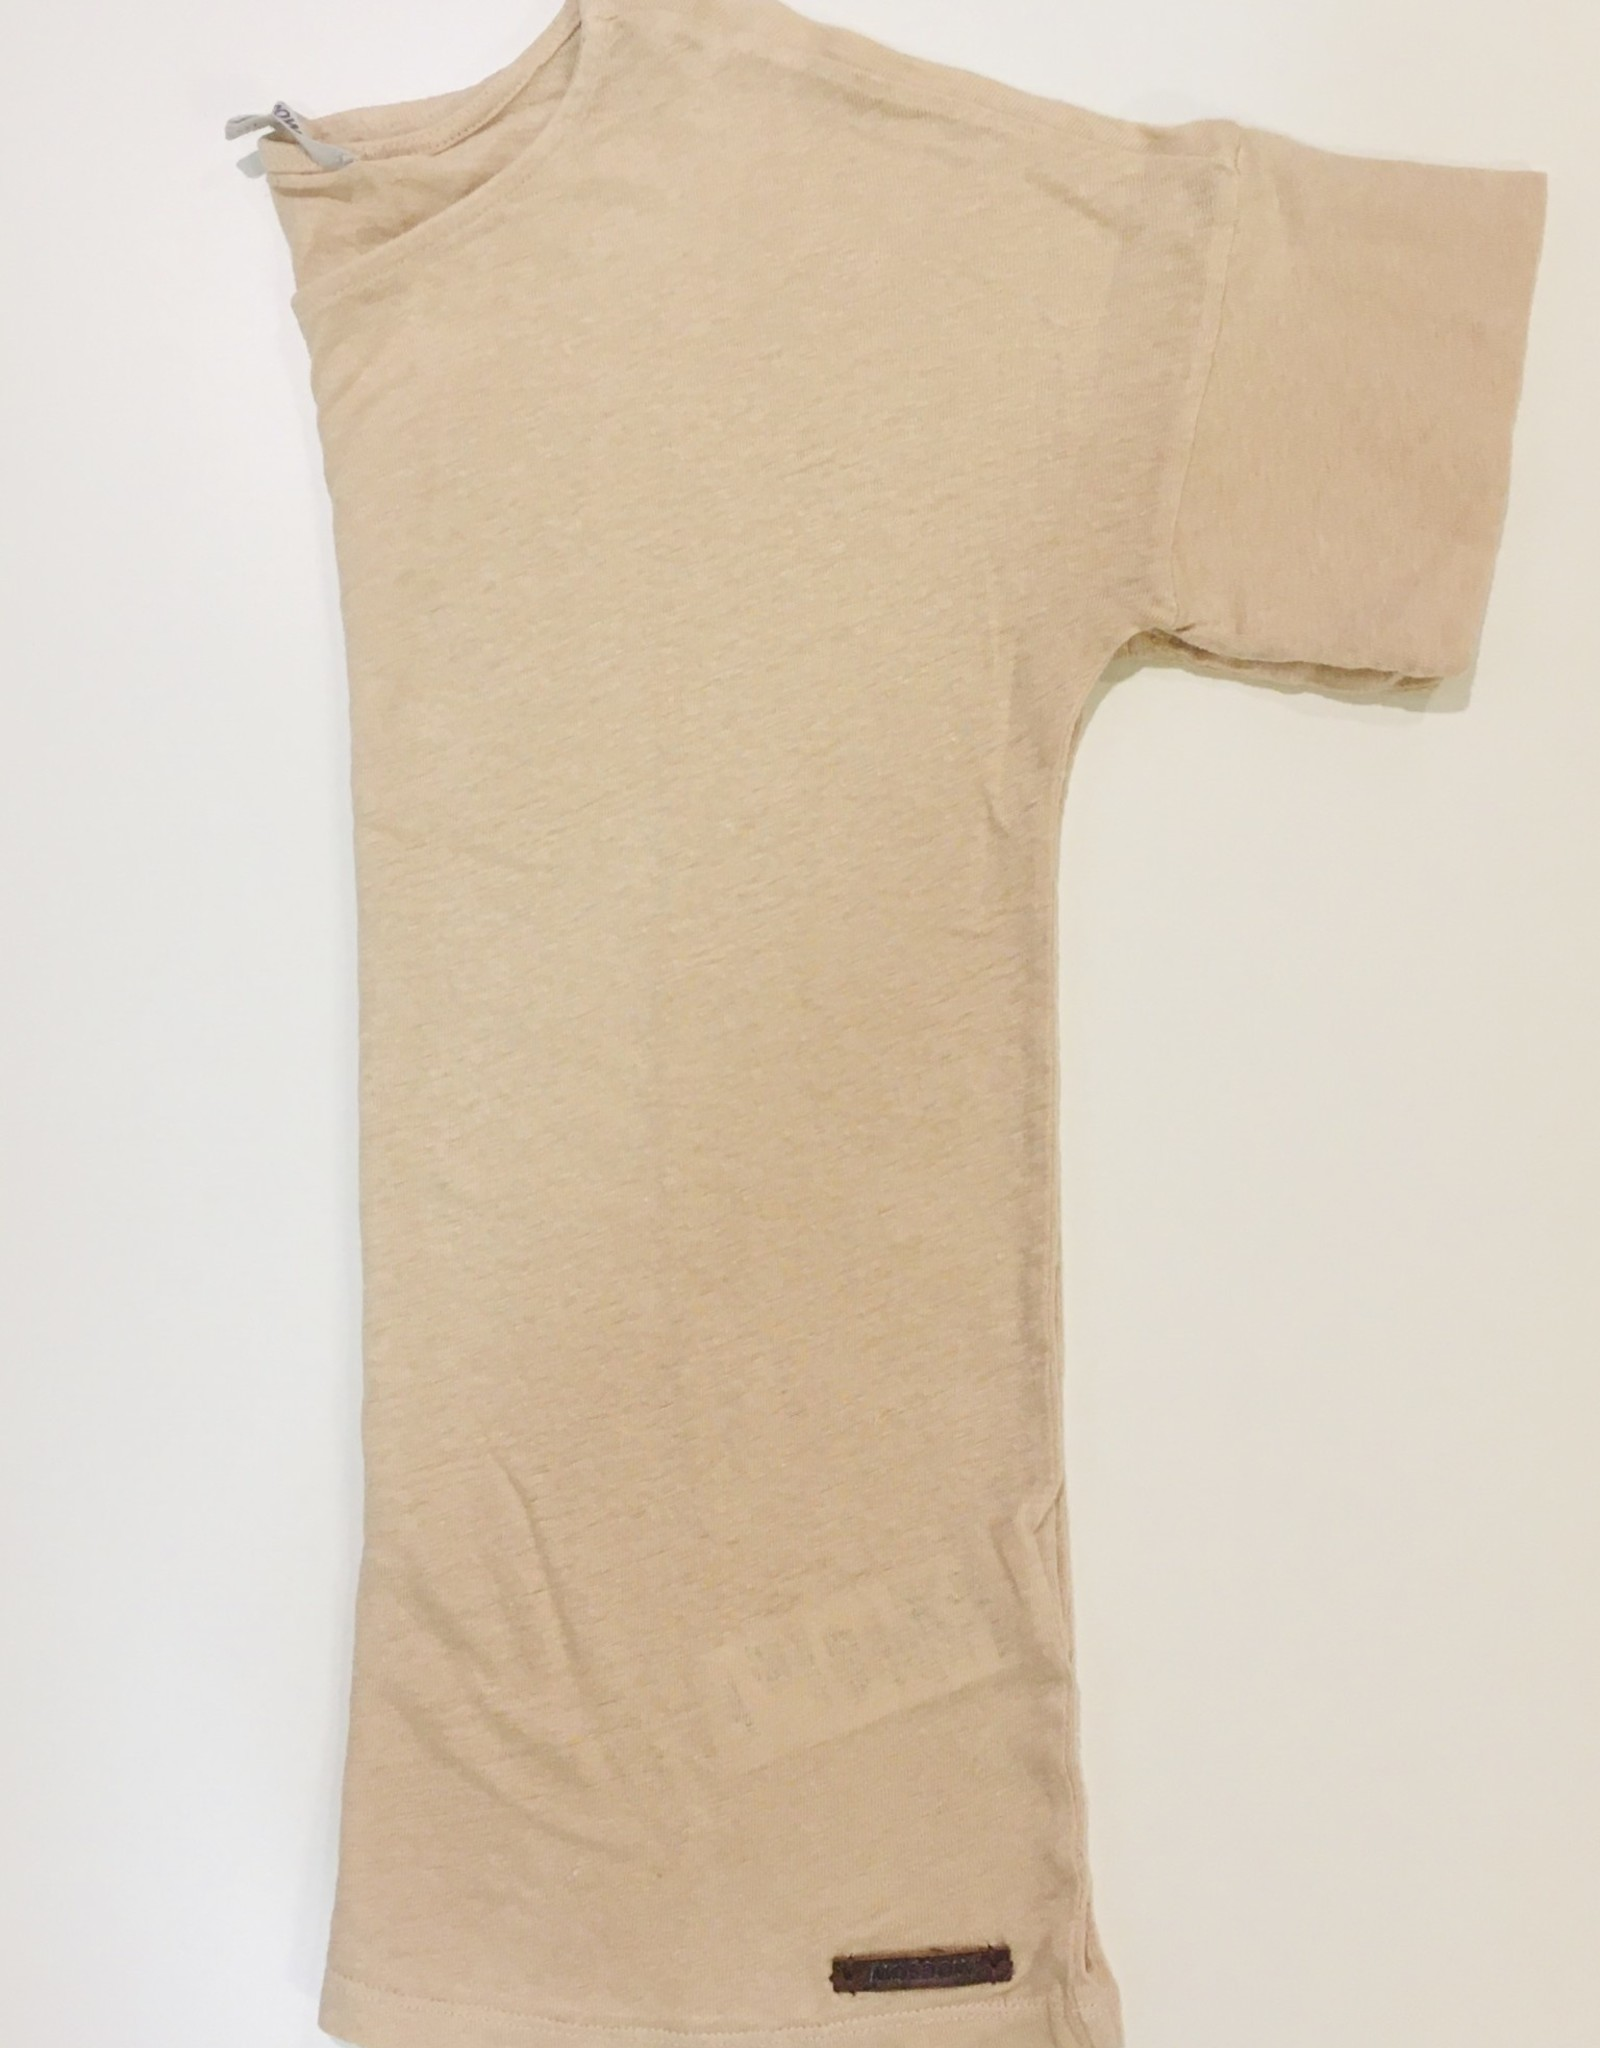 Moscow Top Linen Jersey